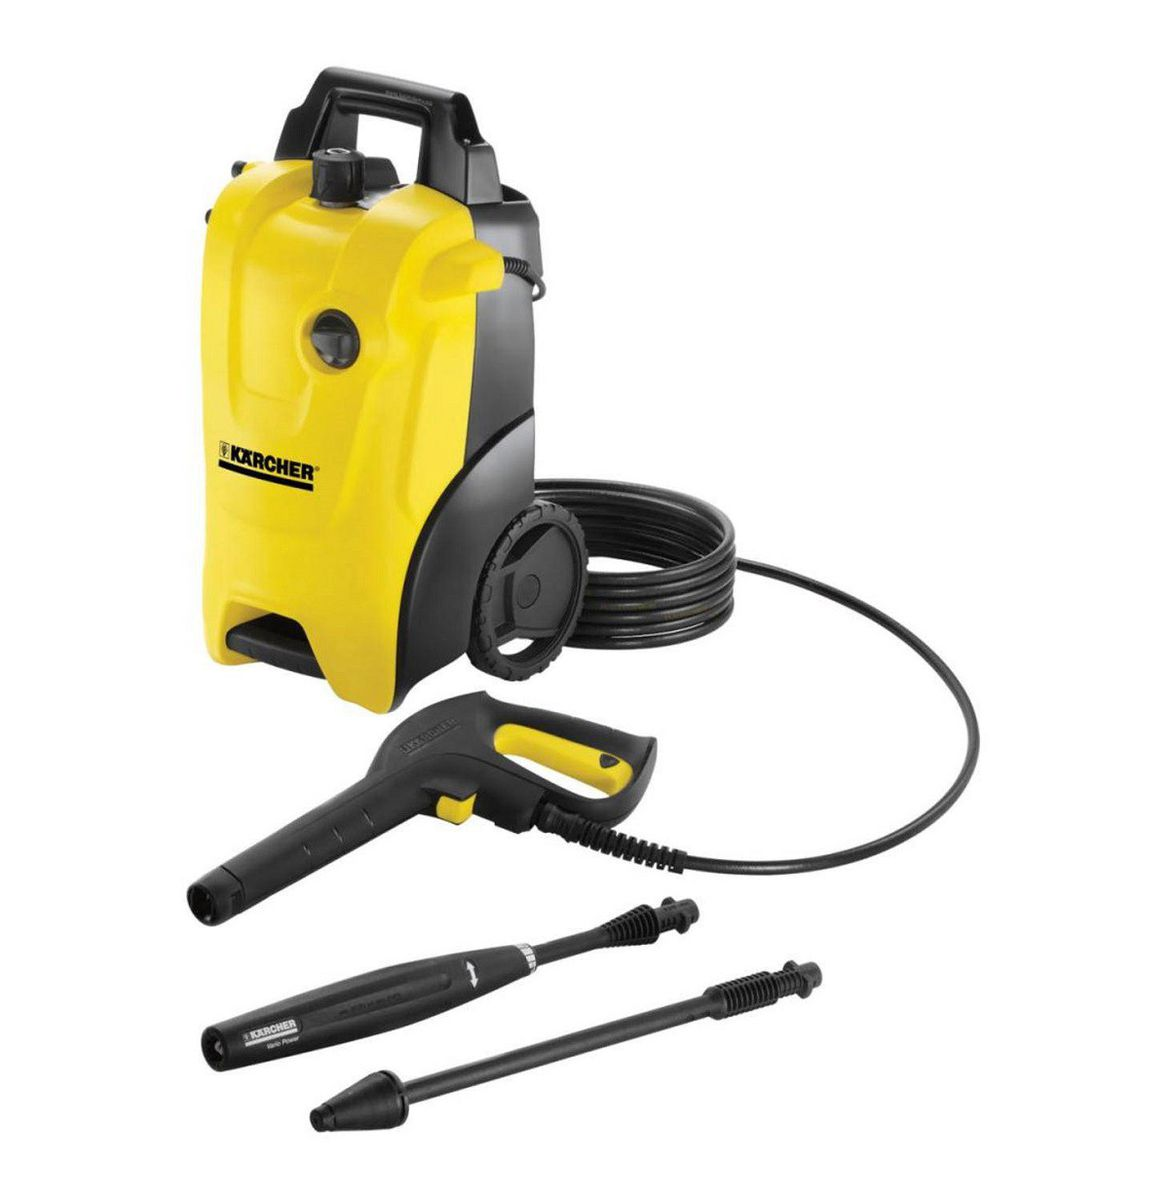 karcher k5 compact high pressure cleaner buy online in south africa. Black Bedroom Furniture Sets. Home Design Ideas